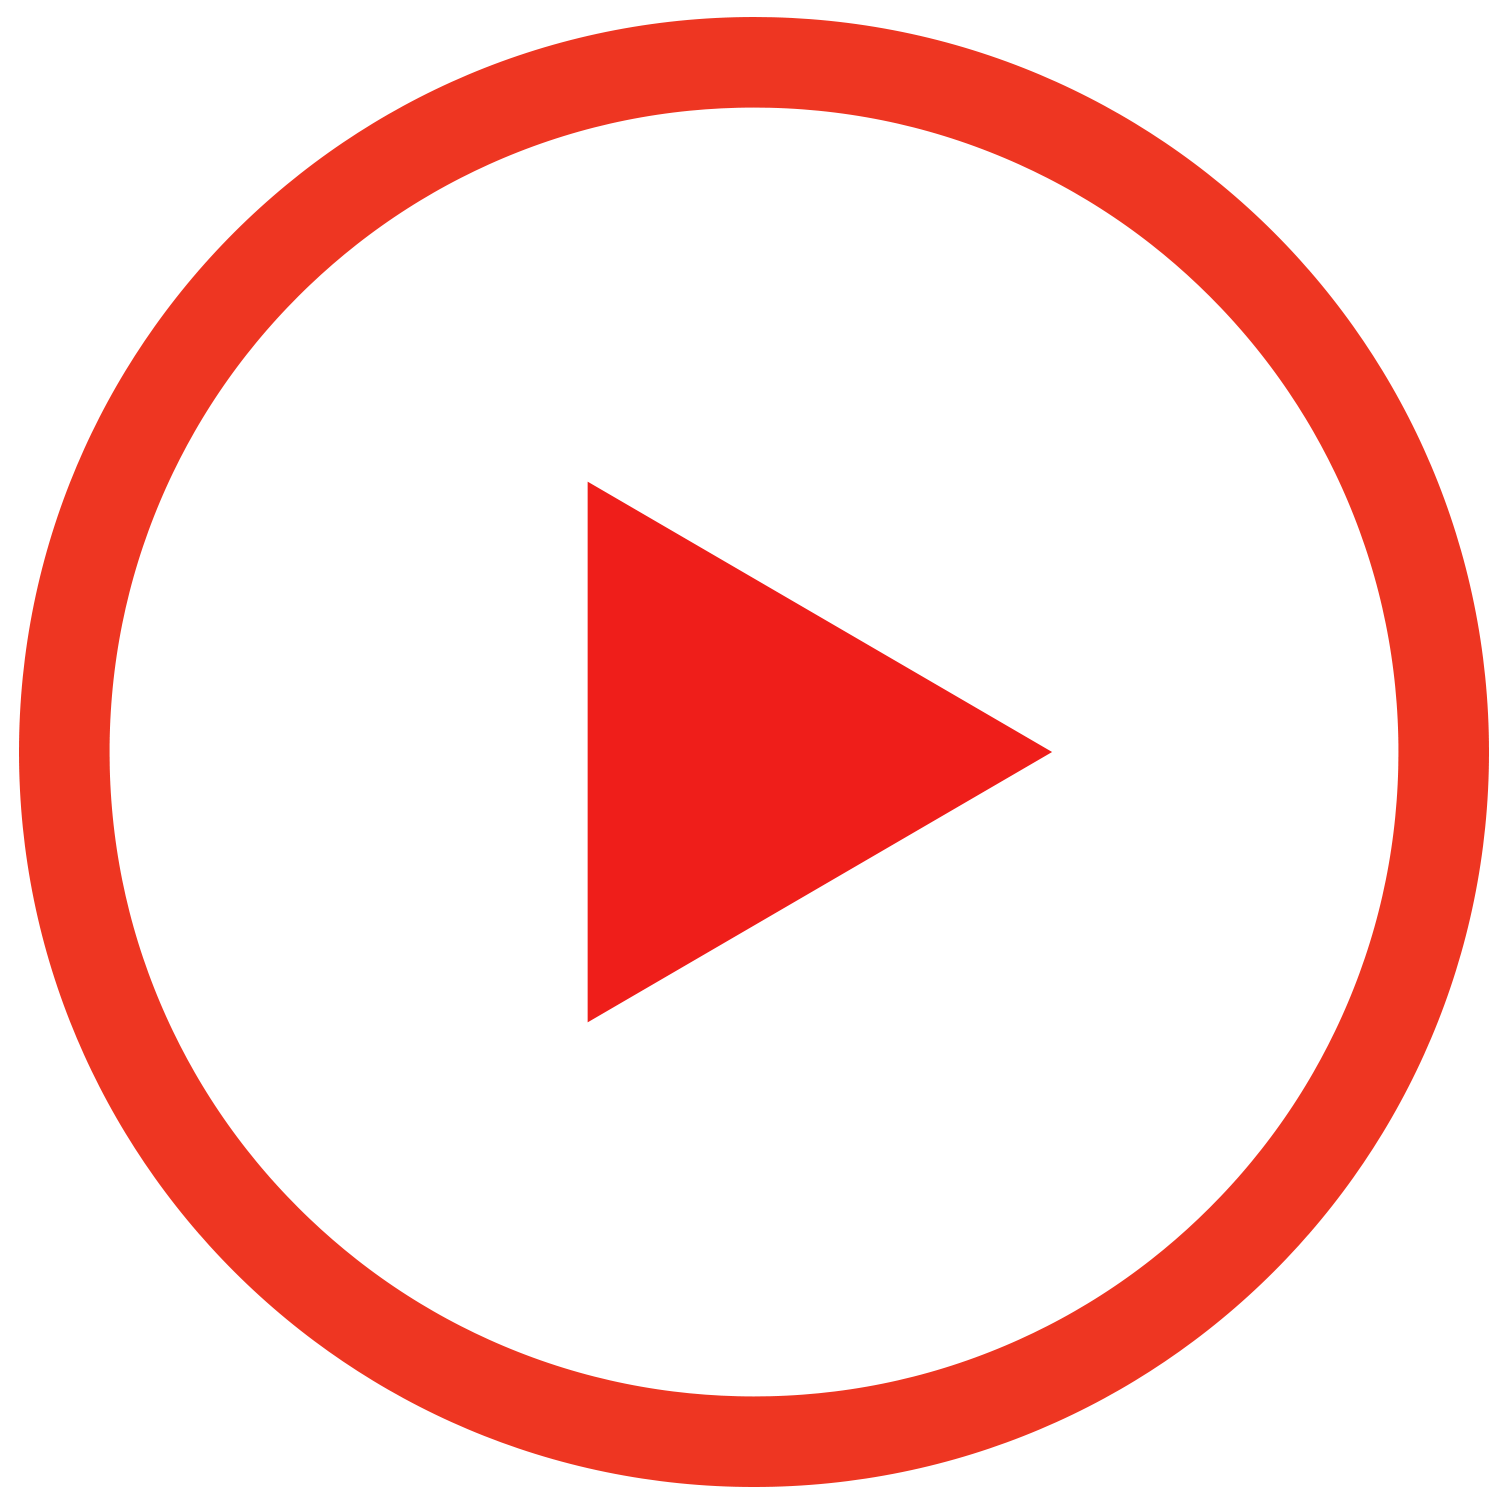 Youtube Play Button Png Images Youtube Video Play Buttons Free Download Free Transparent Png Logos